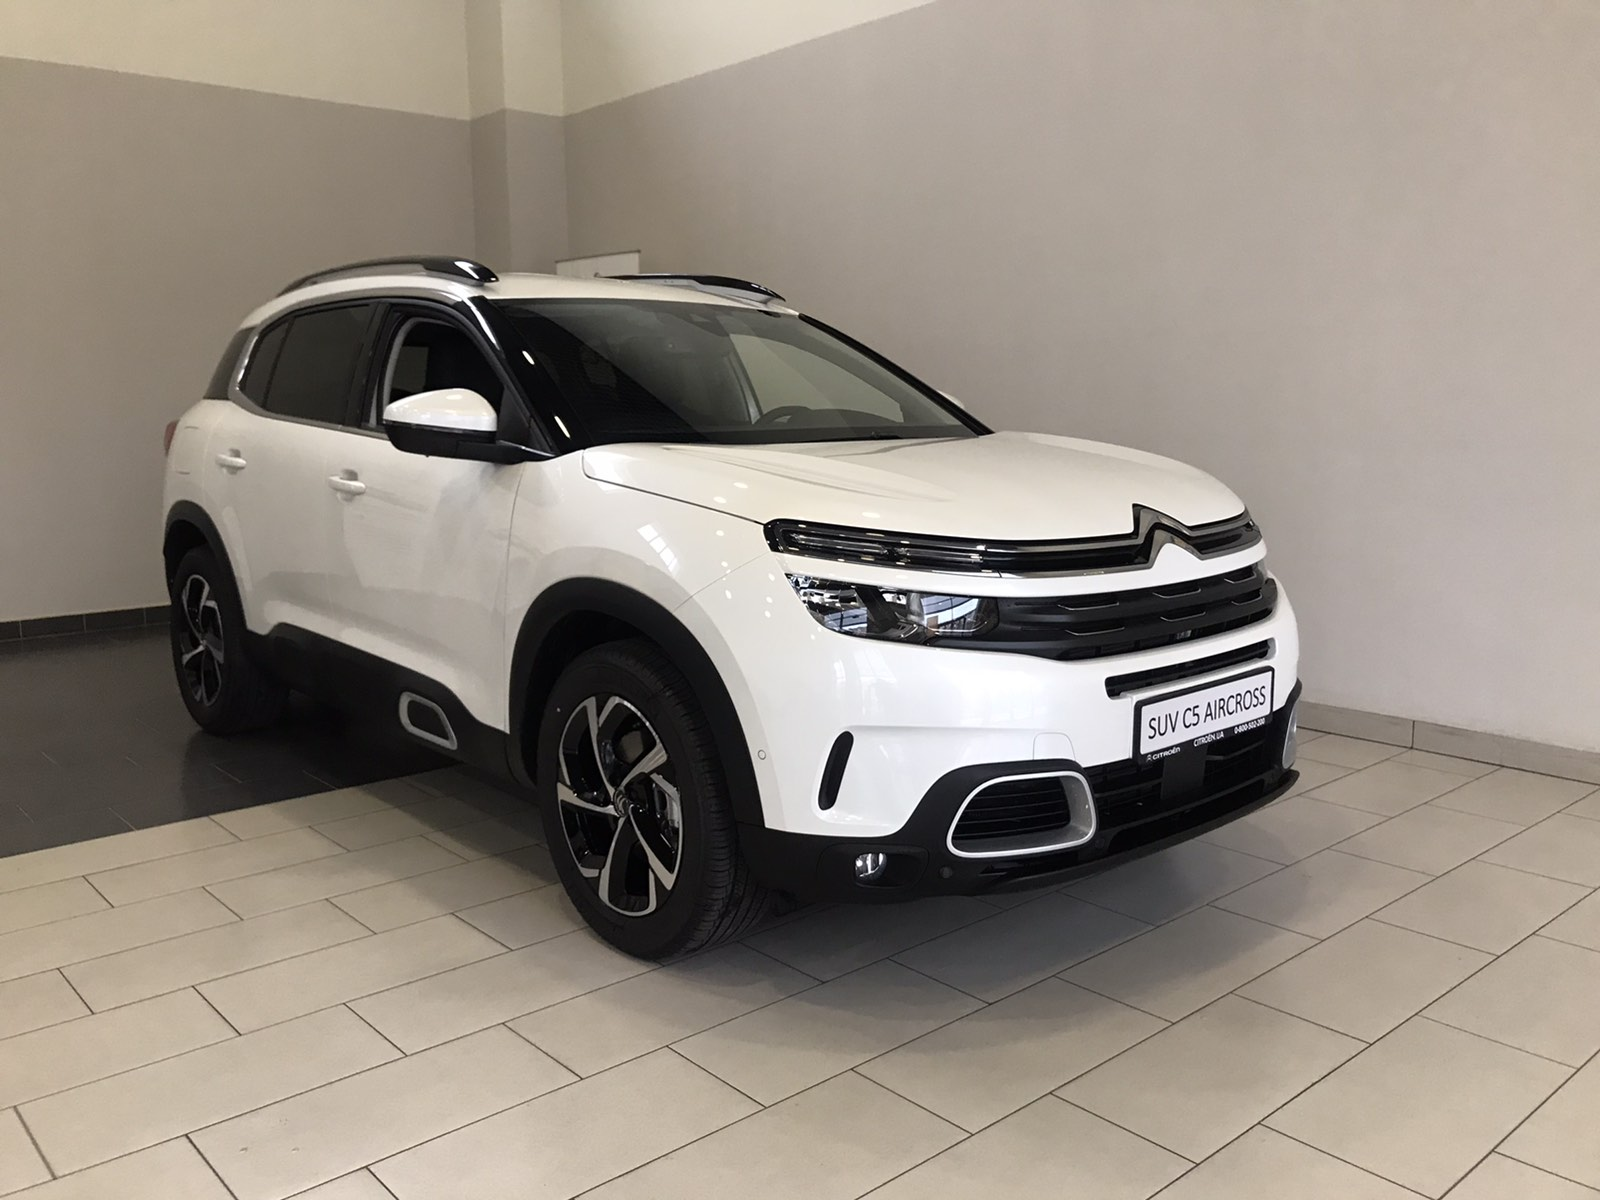 new C5 Aircross 2.0 HDi 180 АКПП-8 FEEL PACK, 2020